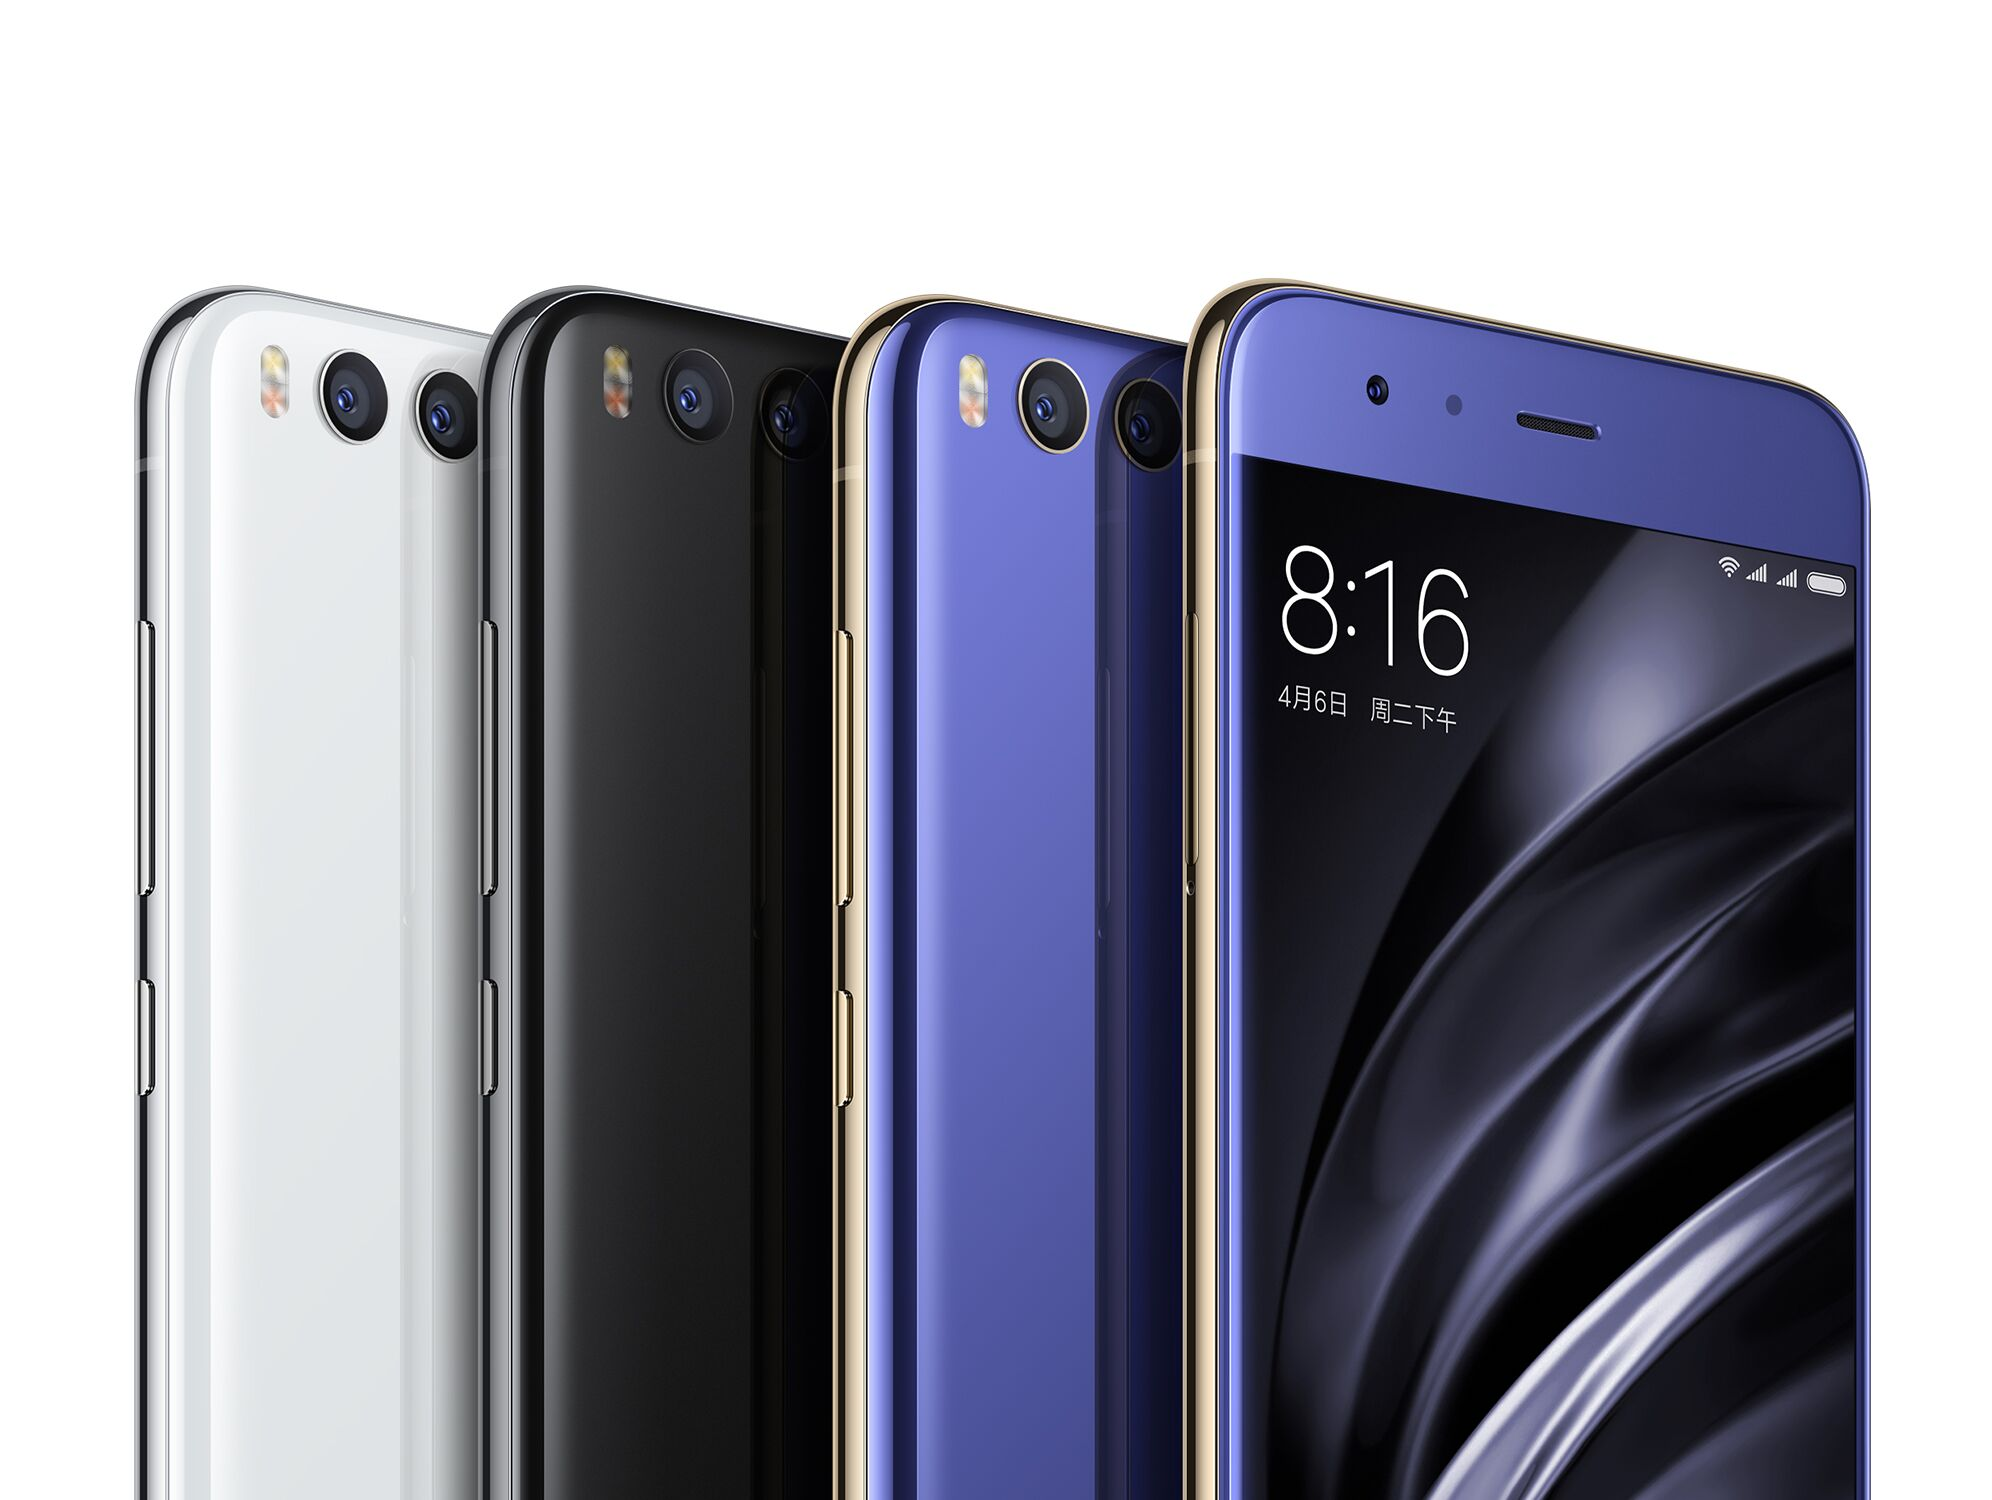 Lanmi, a New Xiaomi's Sub Brand and Its Price, Camera, Battery